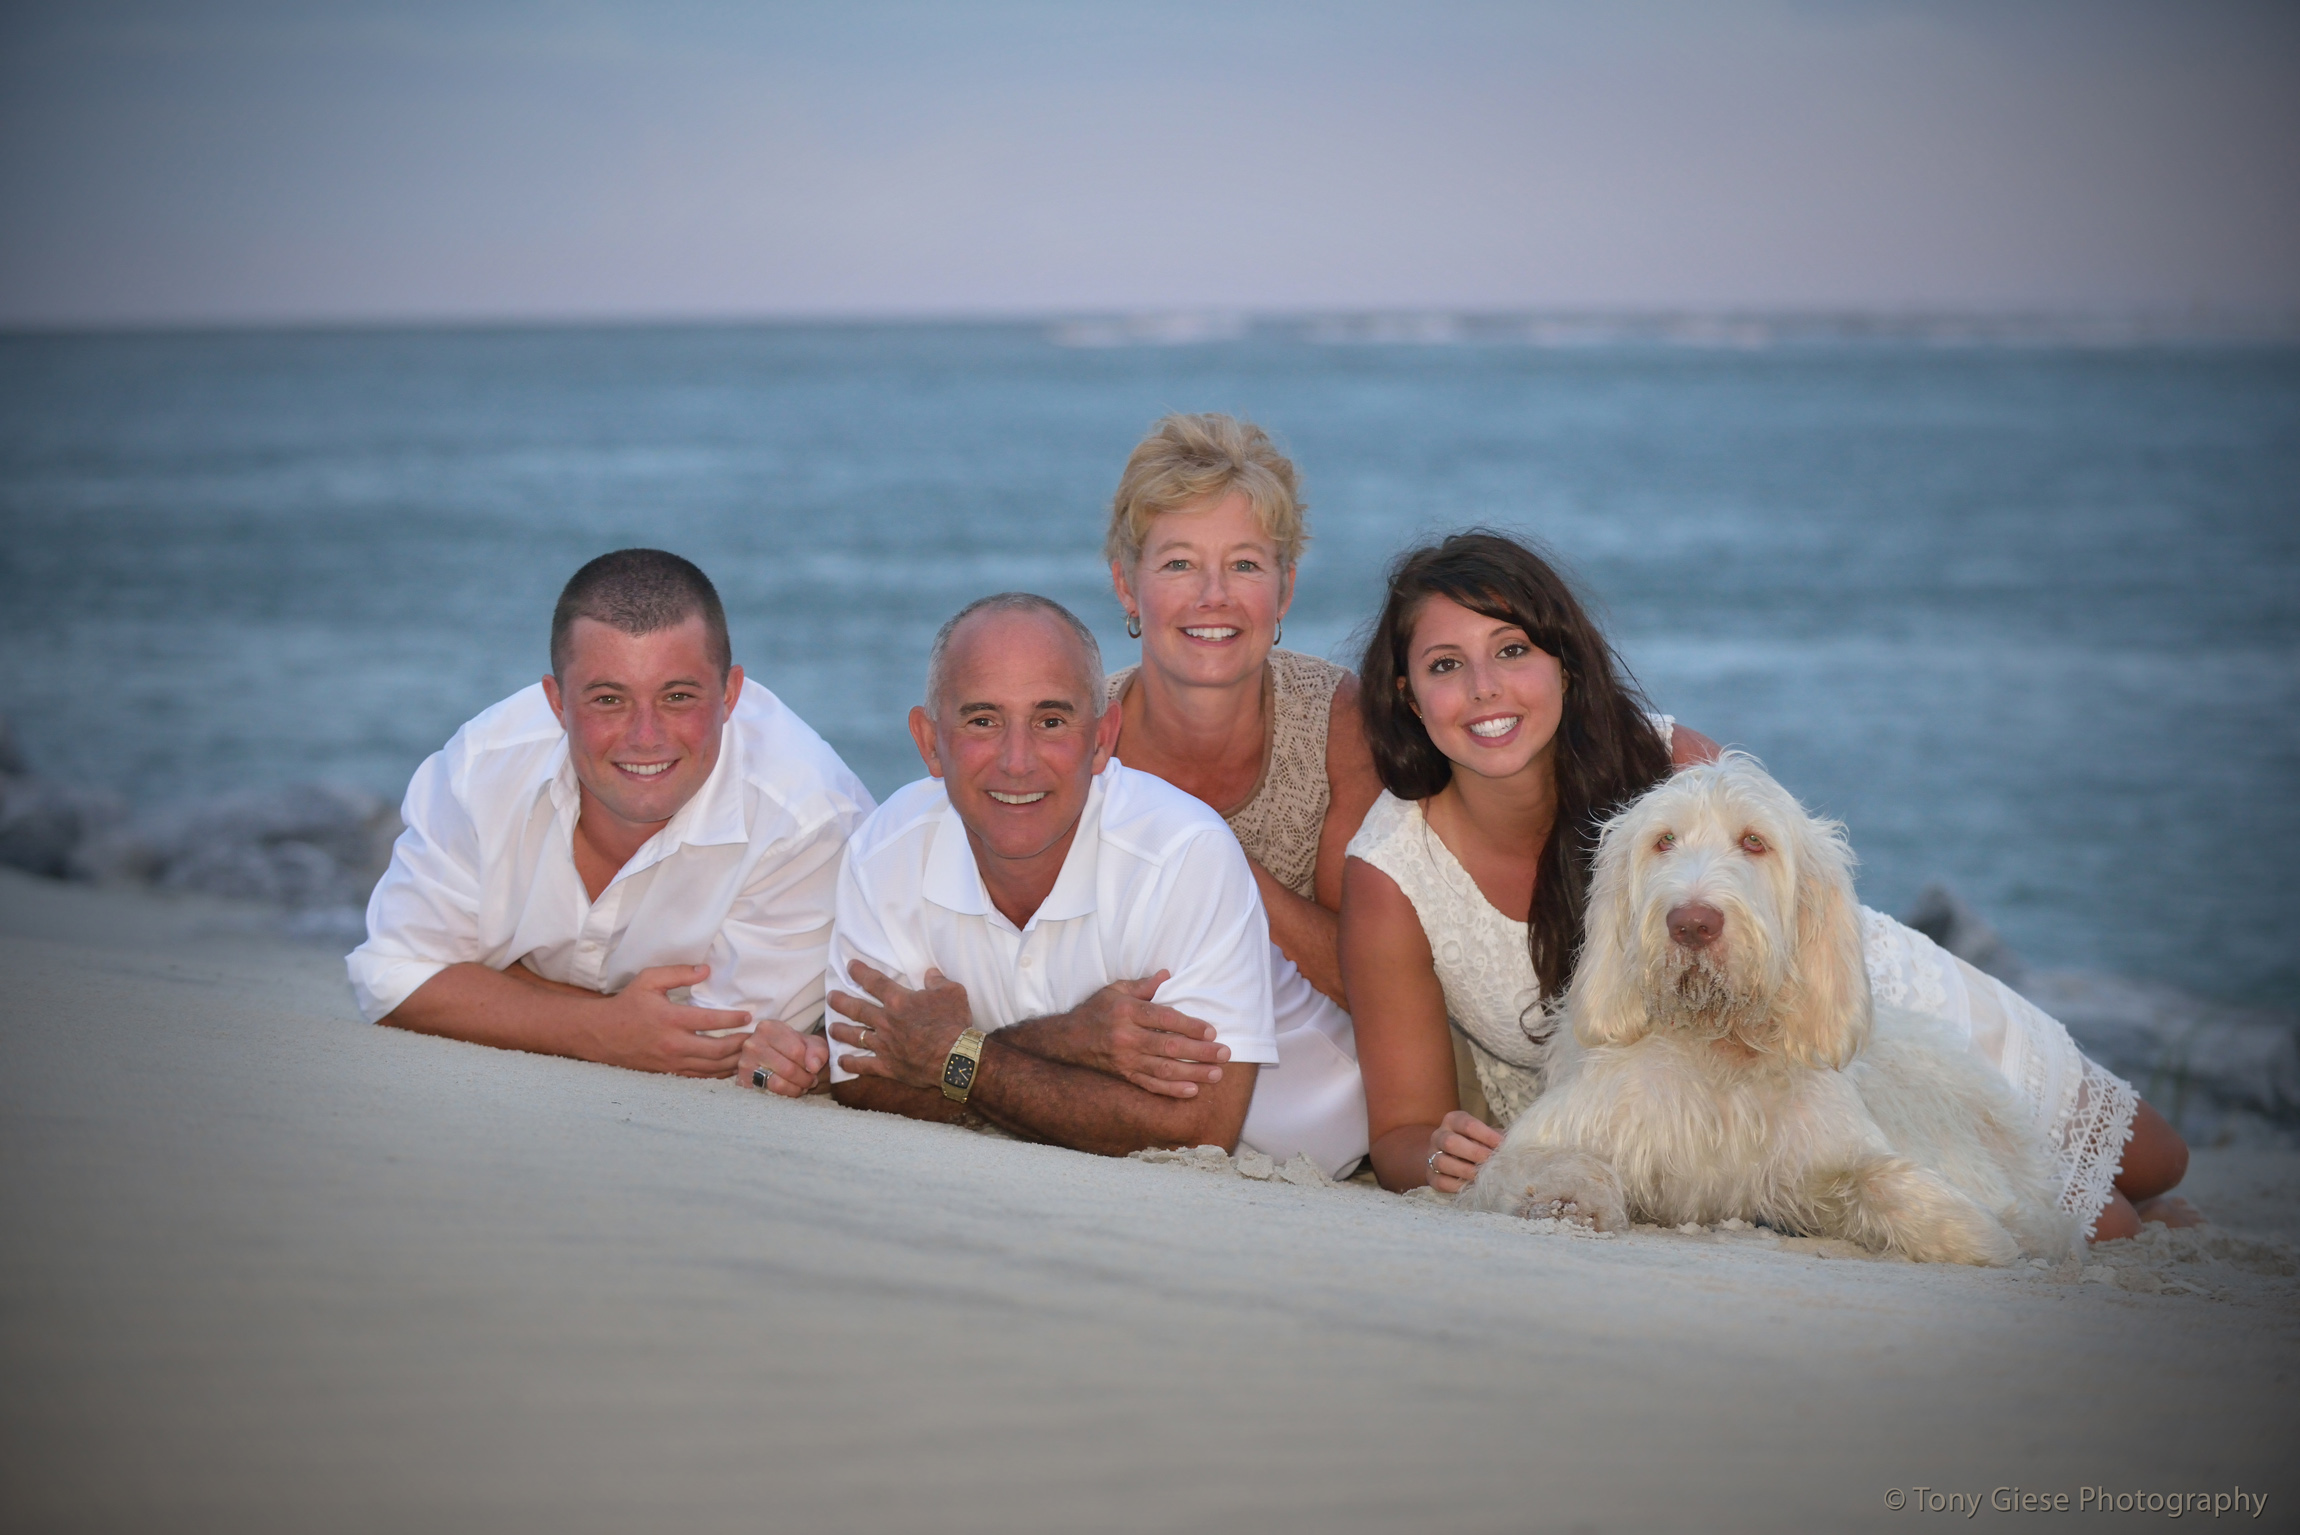 Wadsworth family beach portrait taken by professional photographer Tony Giese